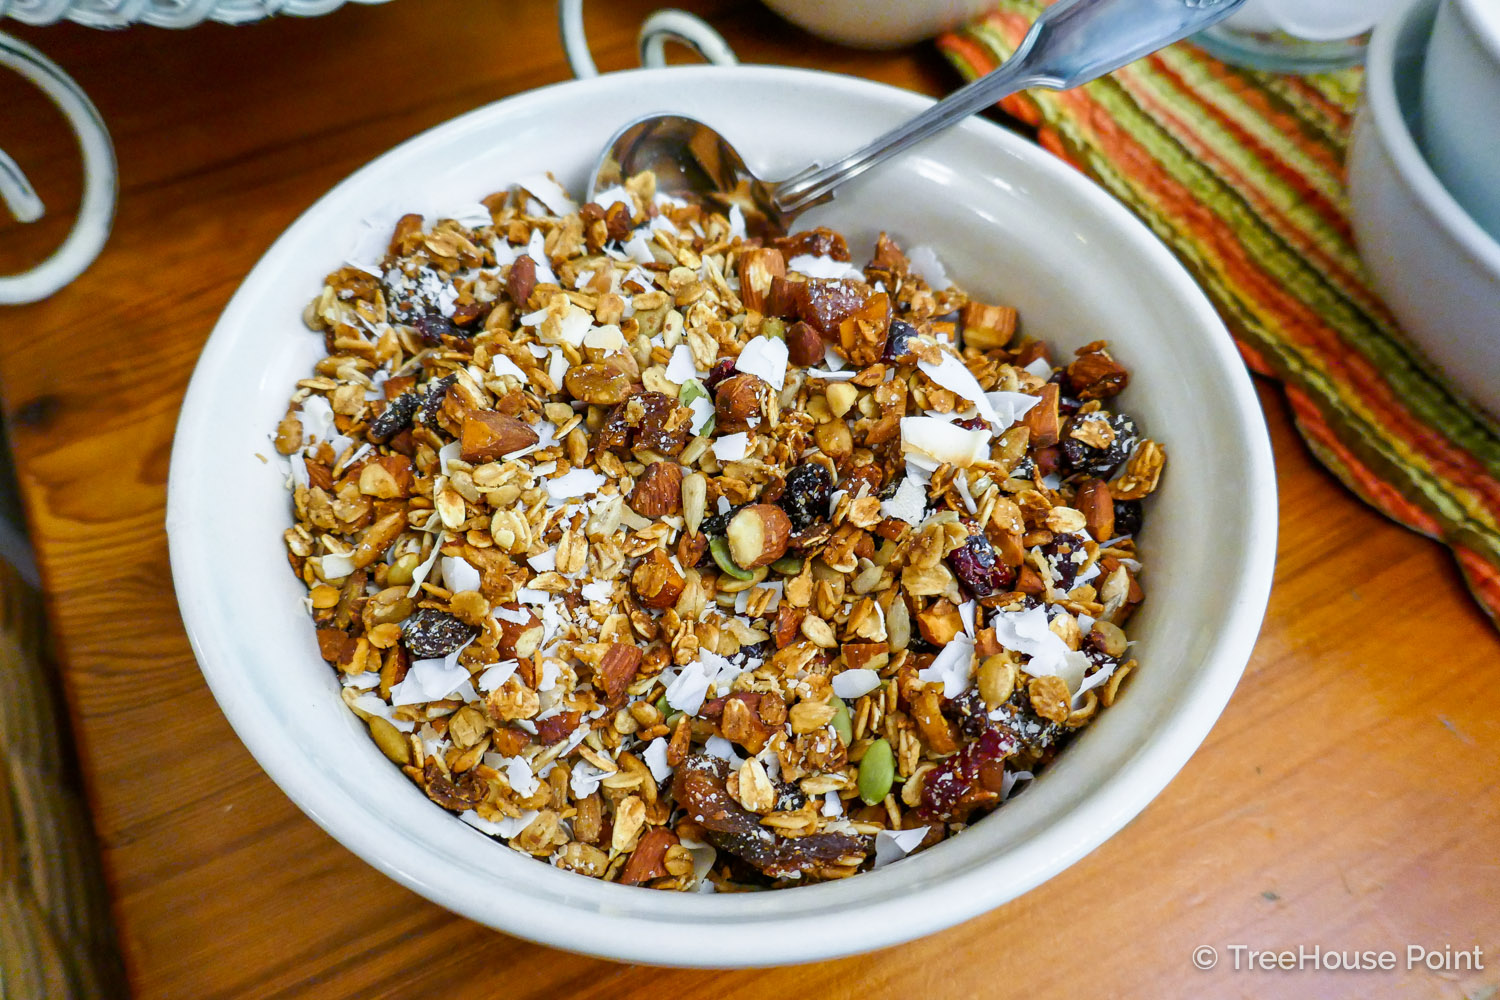 Judy Nelson's famous granola is a daily Delicacy at Treehouse Point's breakfasts.